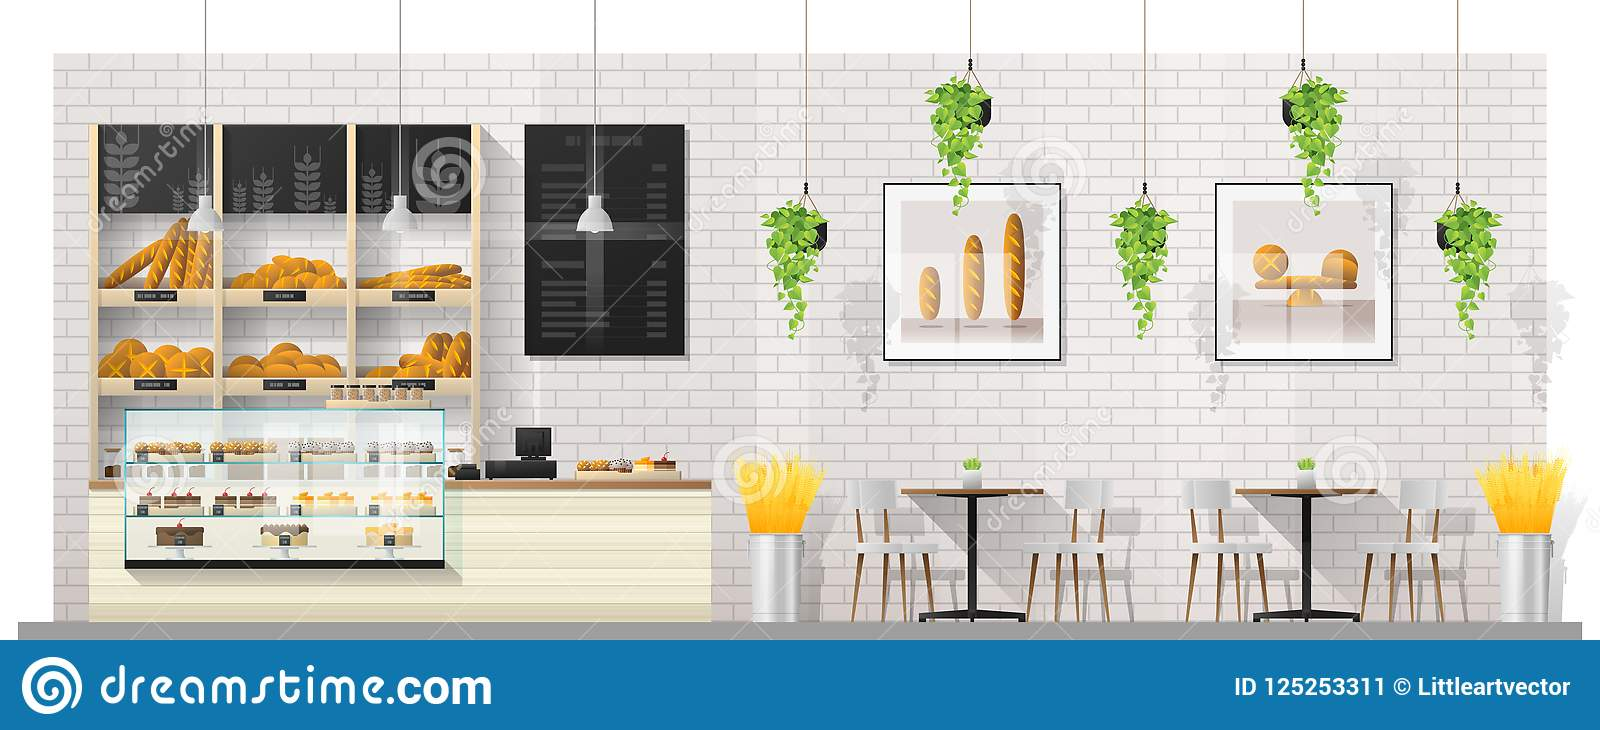 Interior scene of modern bakery shop with display counter , tables and chairs